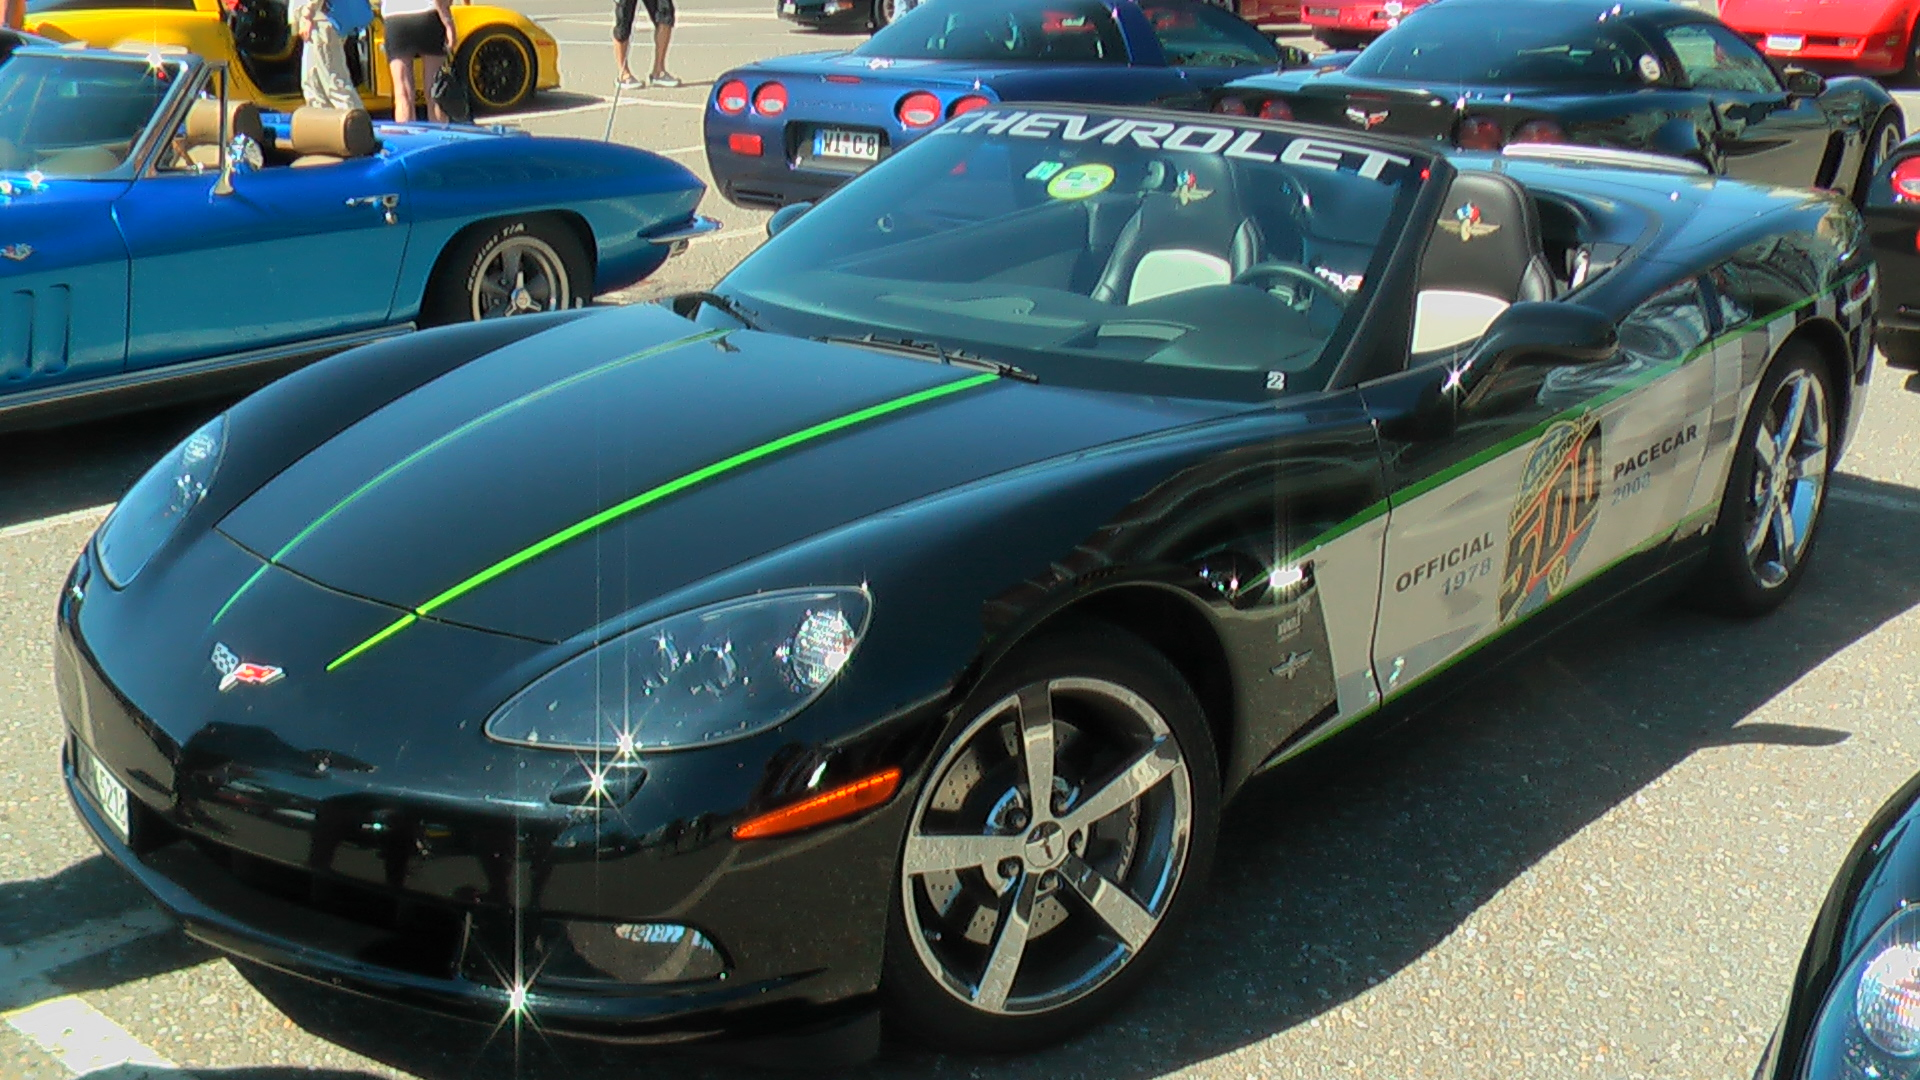 2008 Corvette Indy Pace Car #2 together with #23 - Andi Z